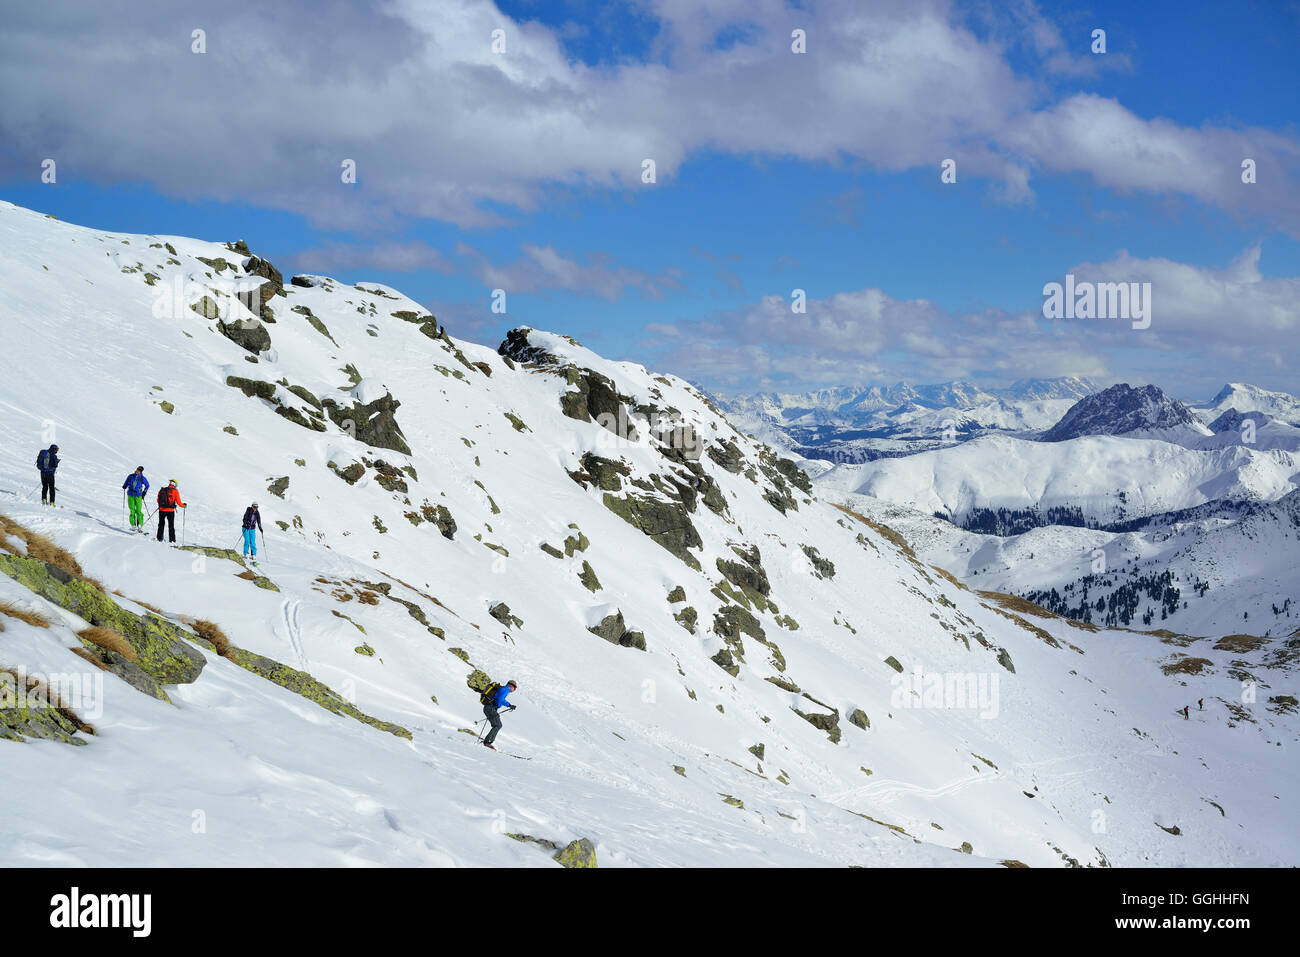 Back-country skiers downhill skiing from Schafsiedel, Kitzbuehel Alps, Tyrol, Austria - Stock Image